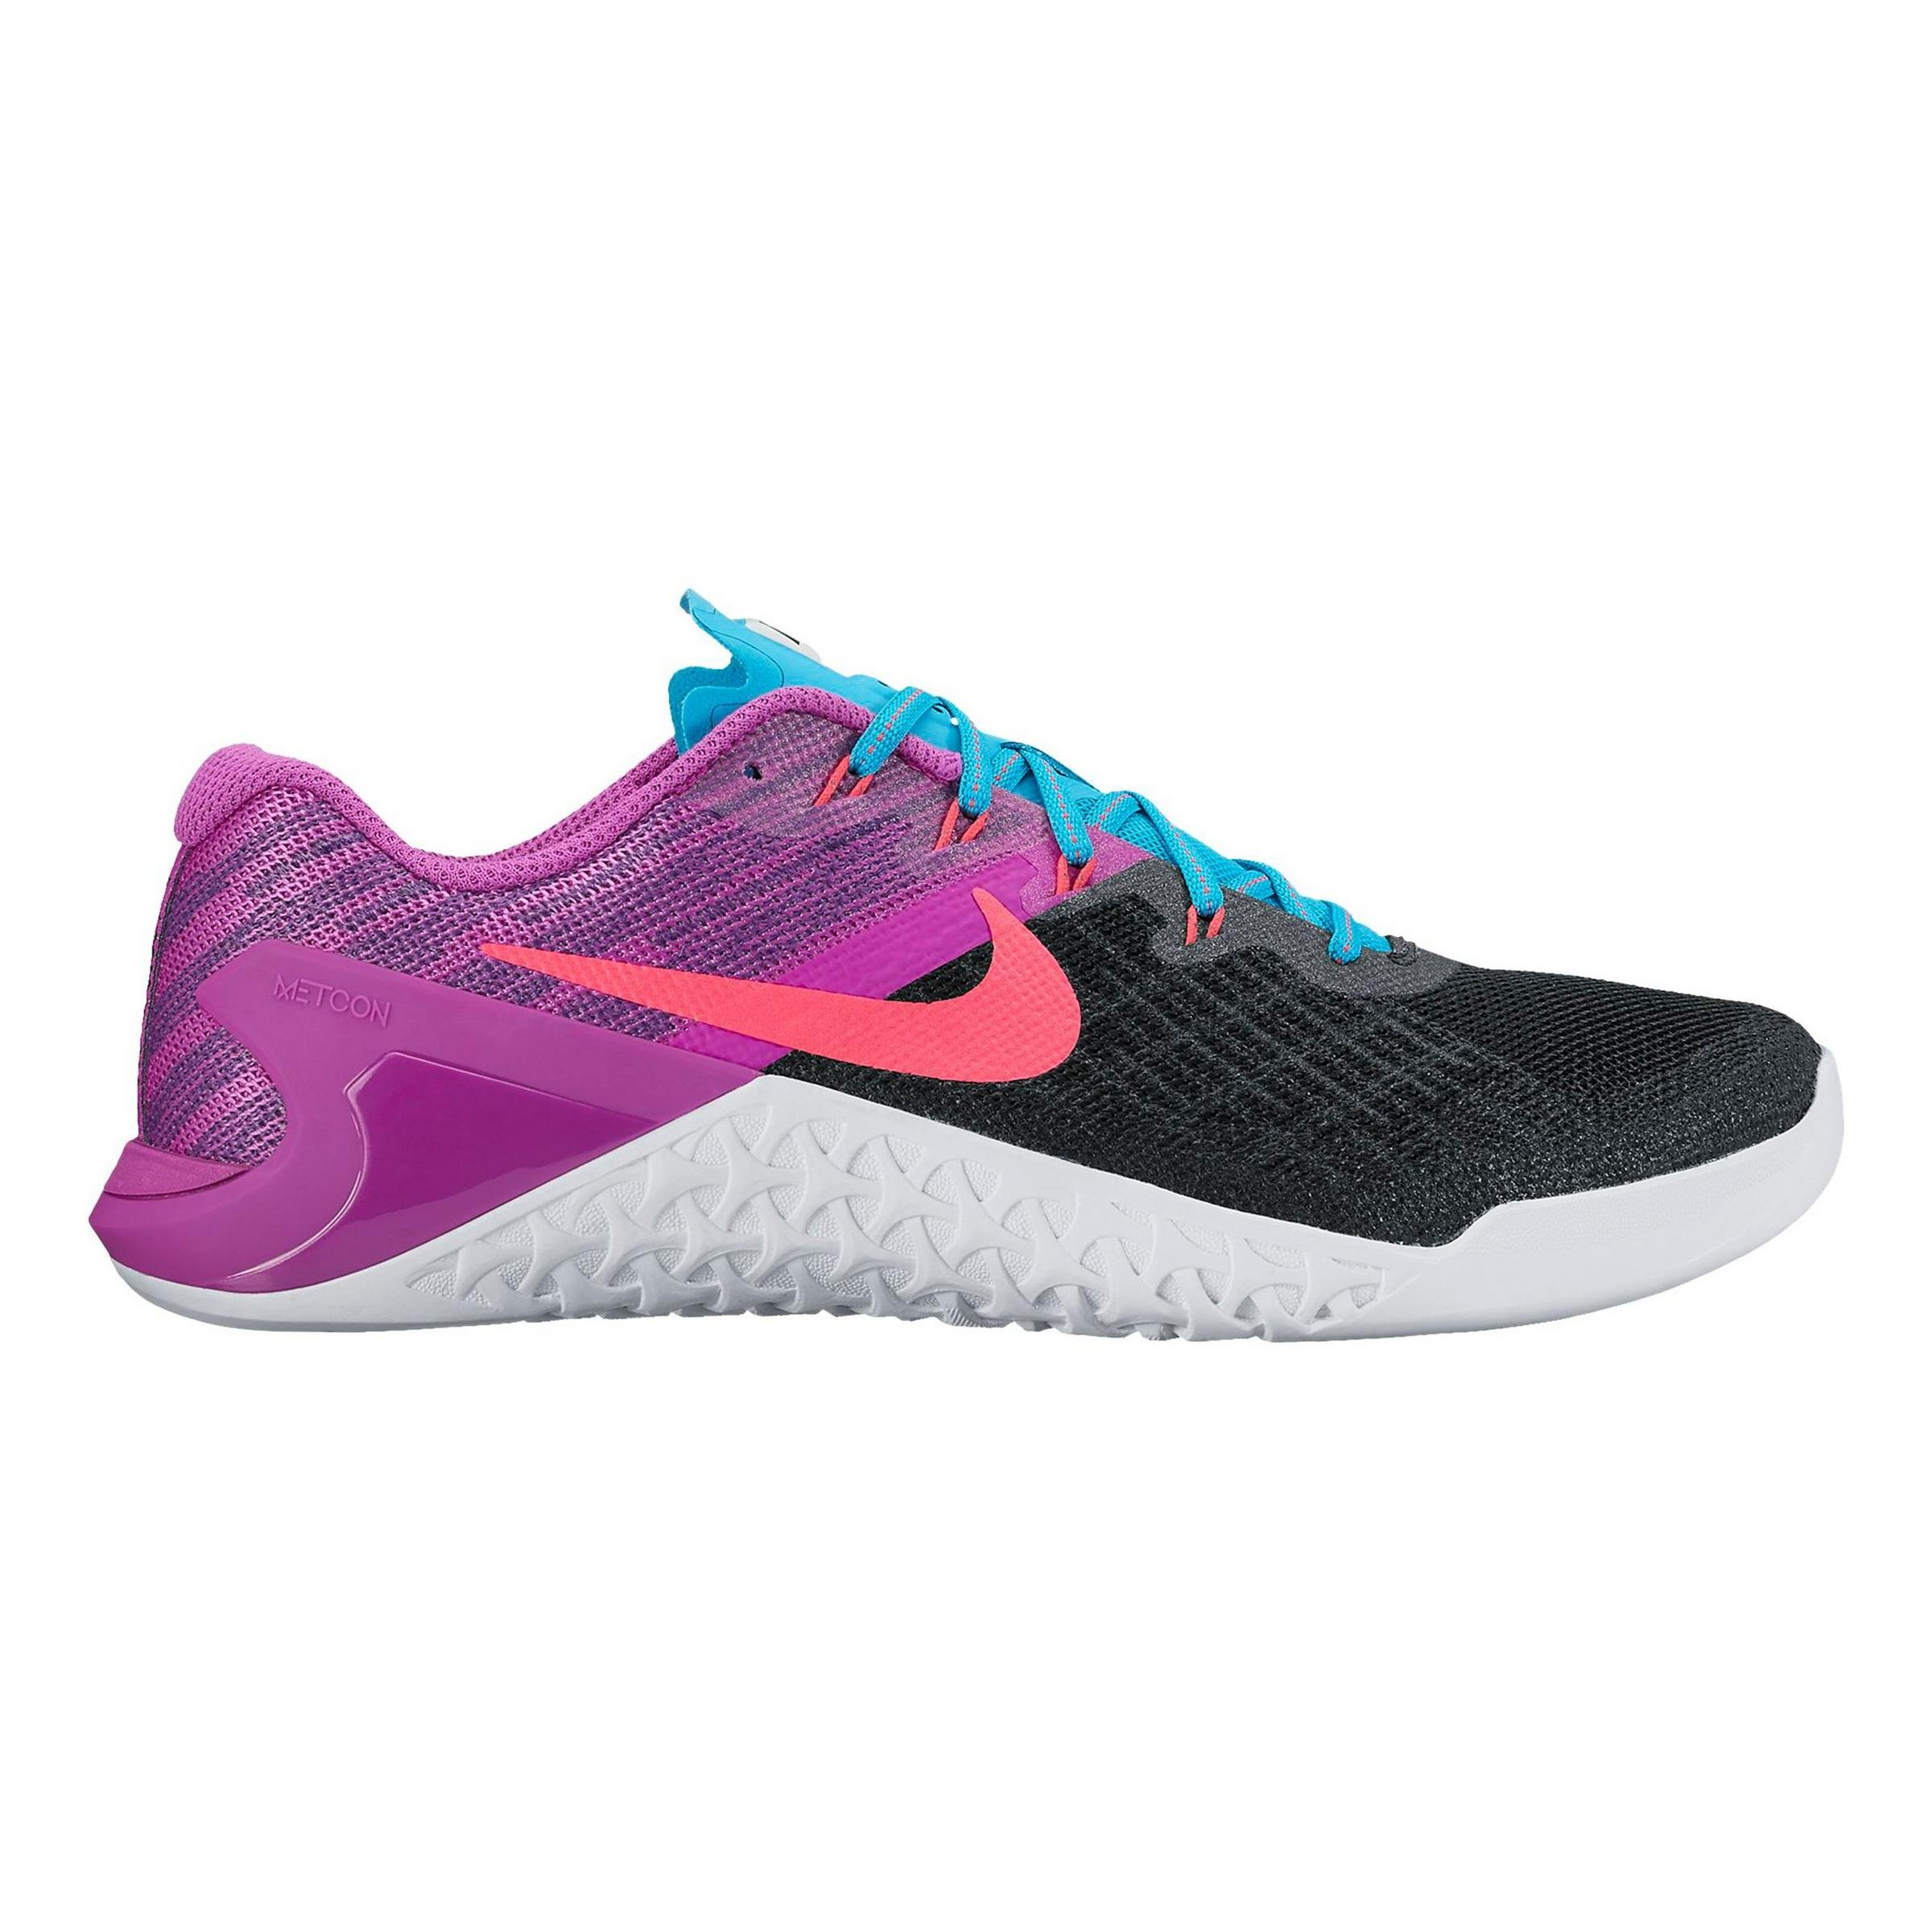 Nike Women's Metcon 3 Training Shoes Black / Racer Pink - Hyper Violet 849807-002 (7)